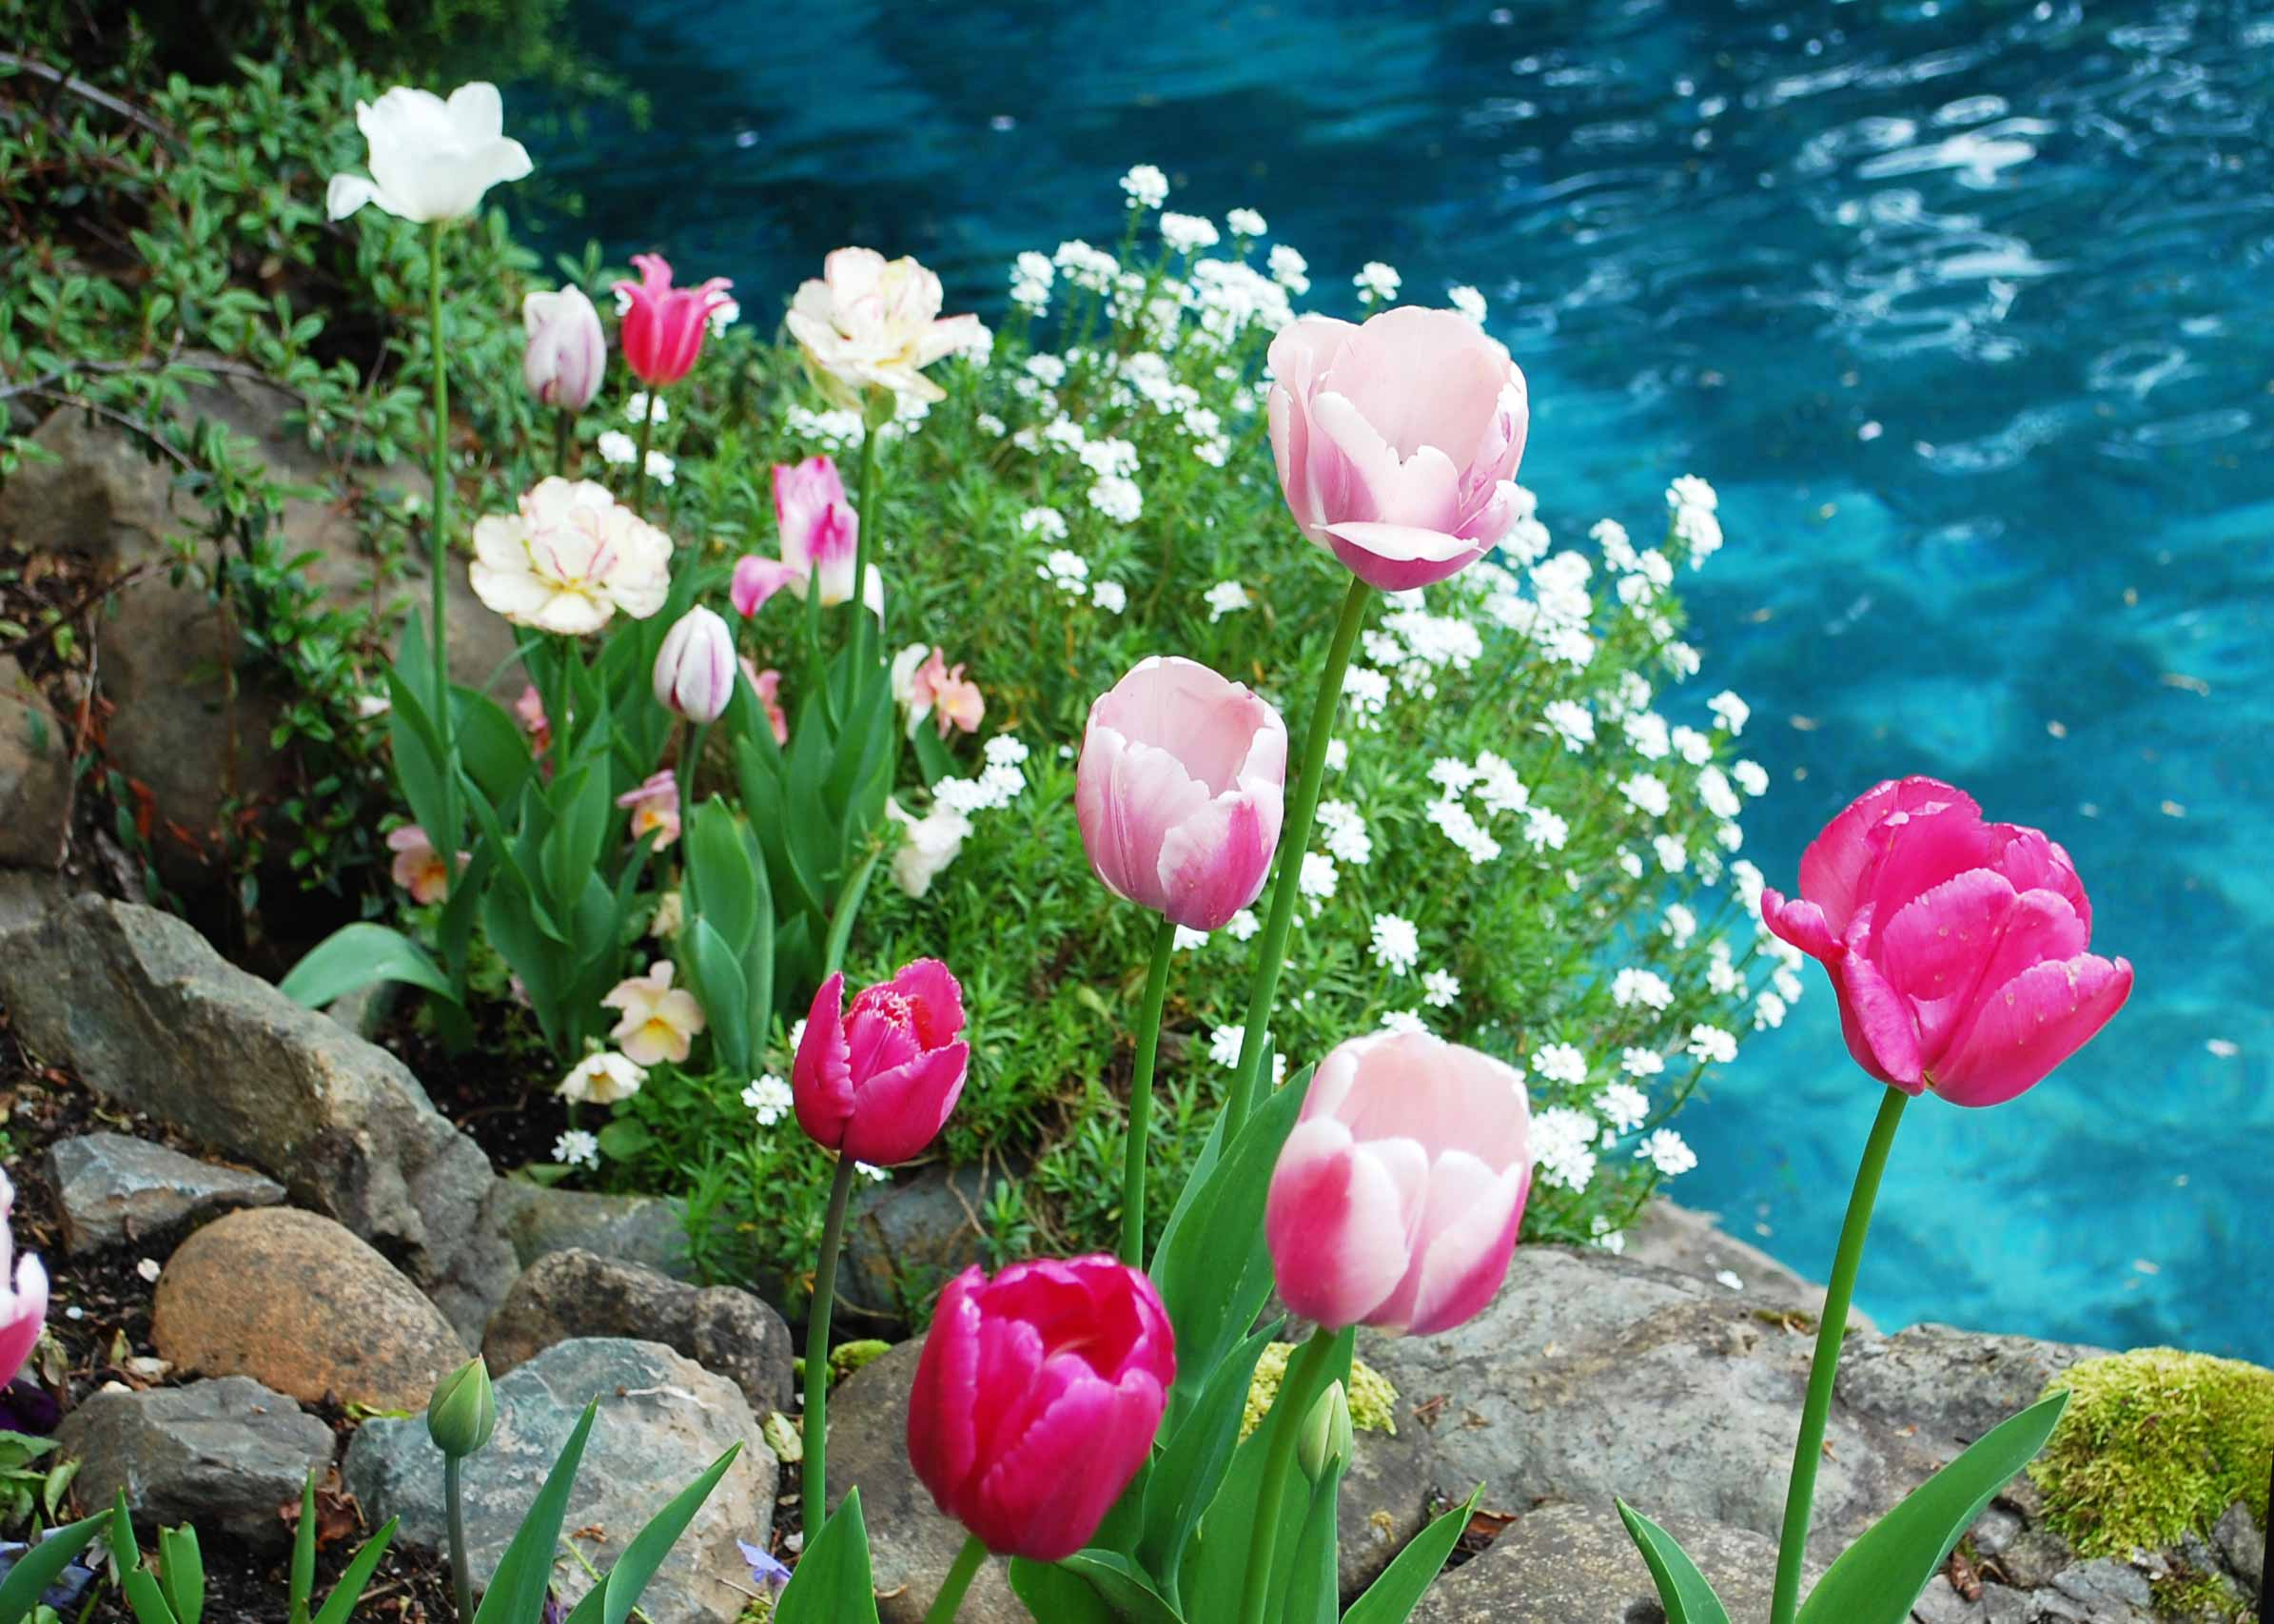 tulips and pond